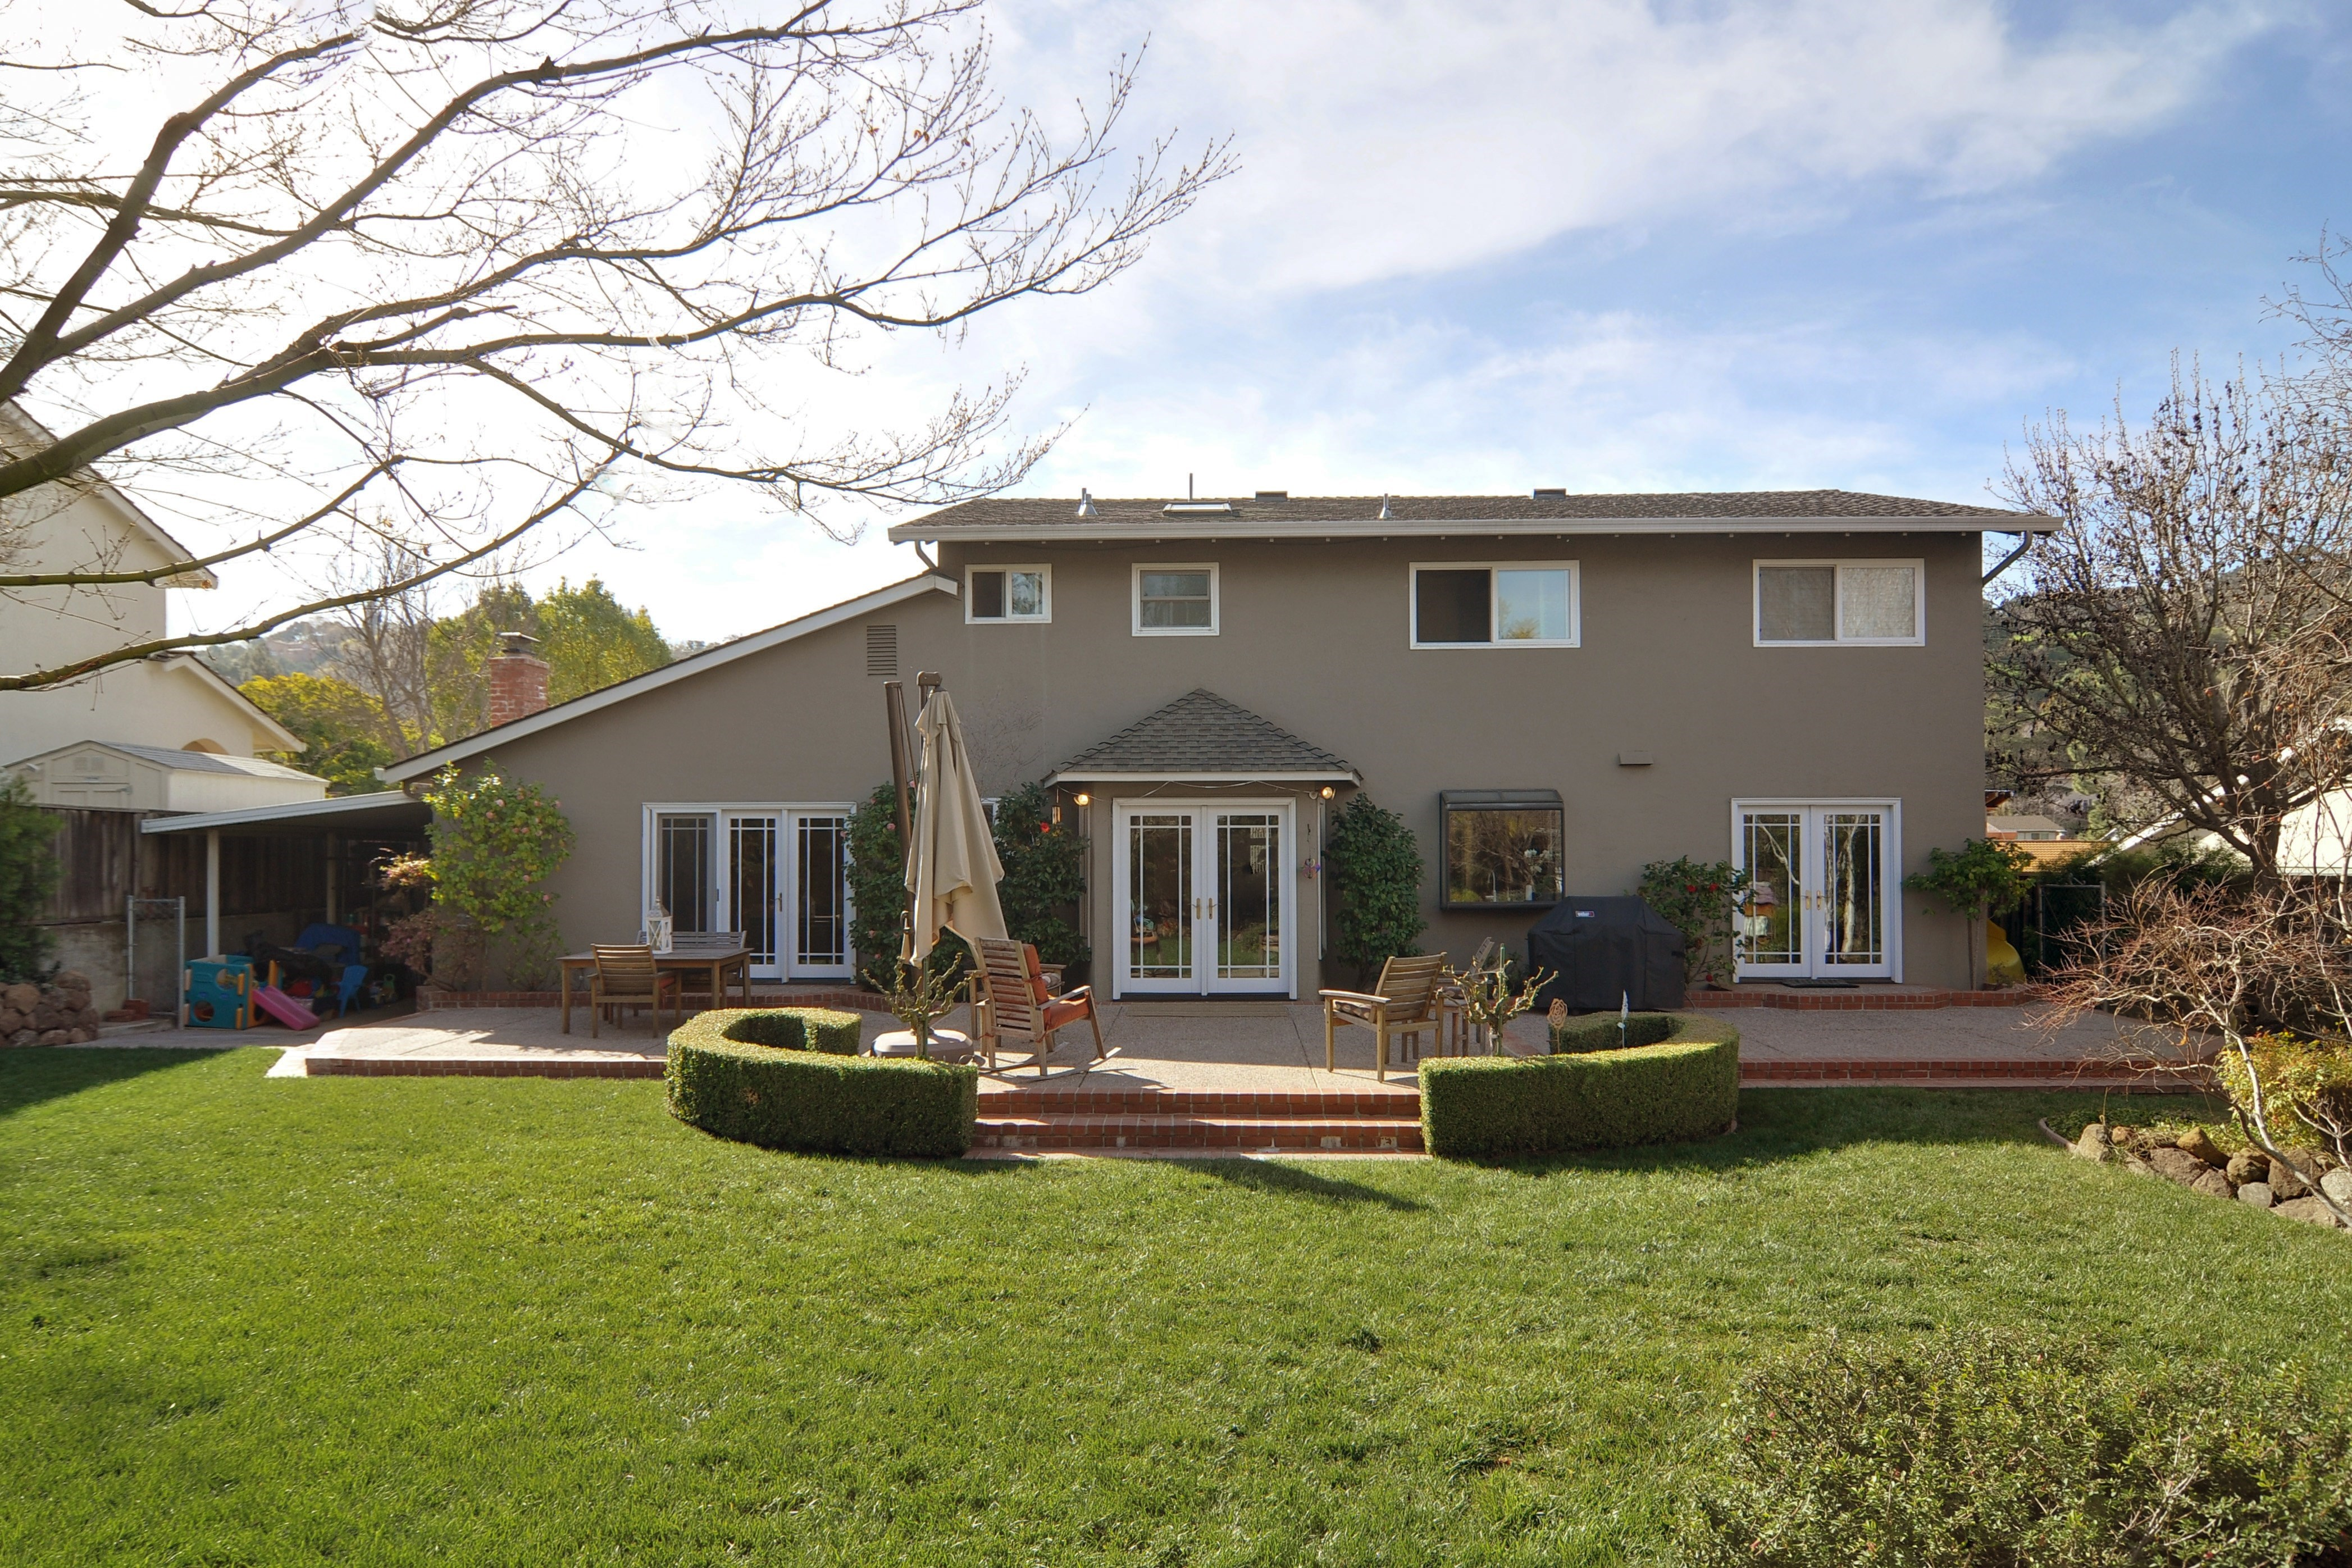 027 Yard and Patio - Exquisite, expansive, remodeled Belwood home - 127 Belhaven Drive, Los Gatos